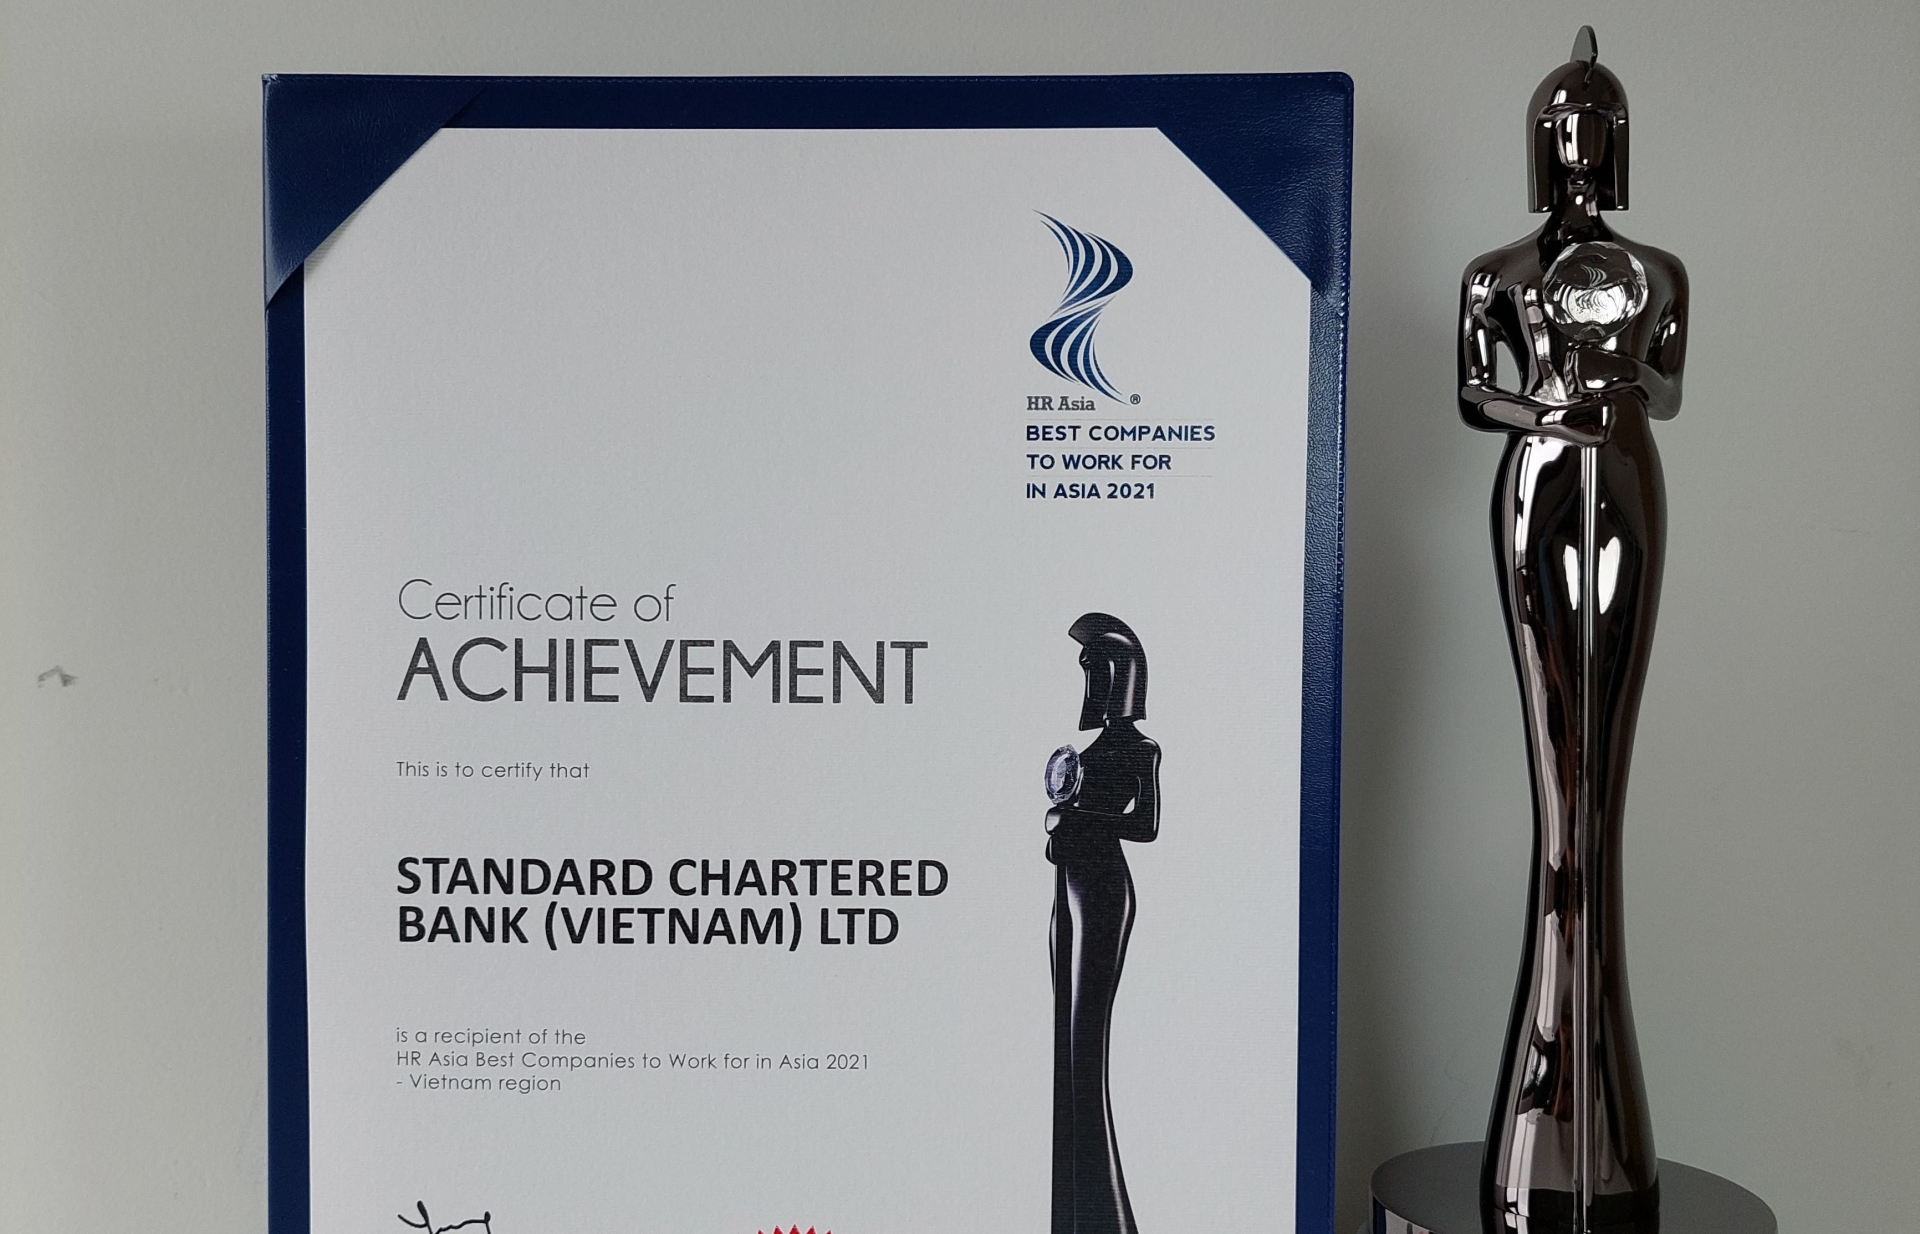 standard chartered vietnam named among the best companies to work for in asia in 2021